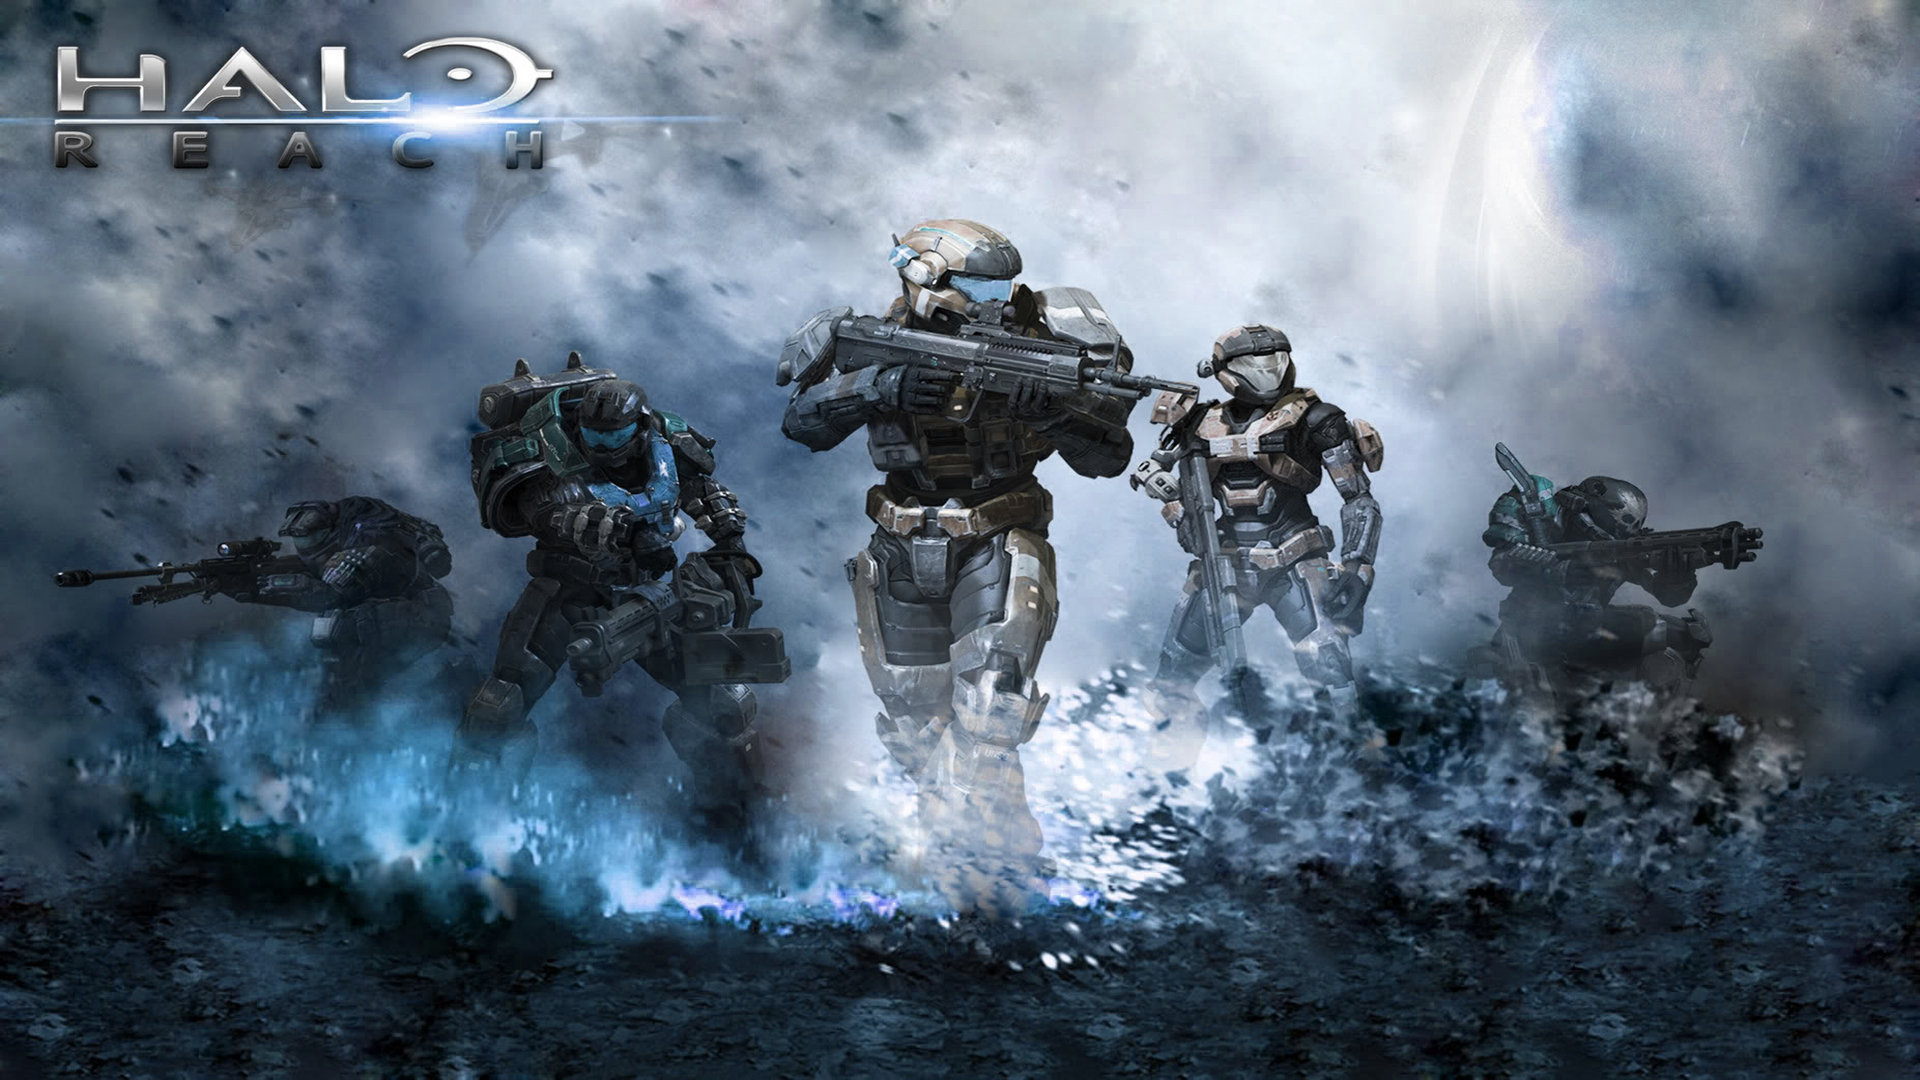 Halo Wallpaper HD download Wallpapers Backgrounds Images Art 1920x1080